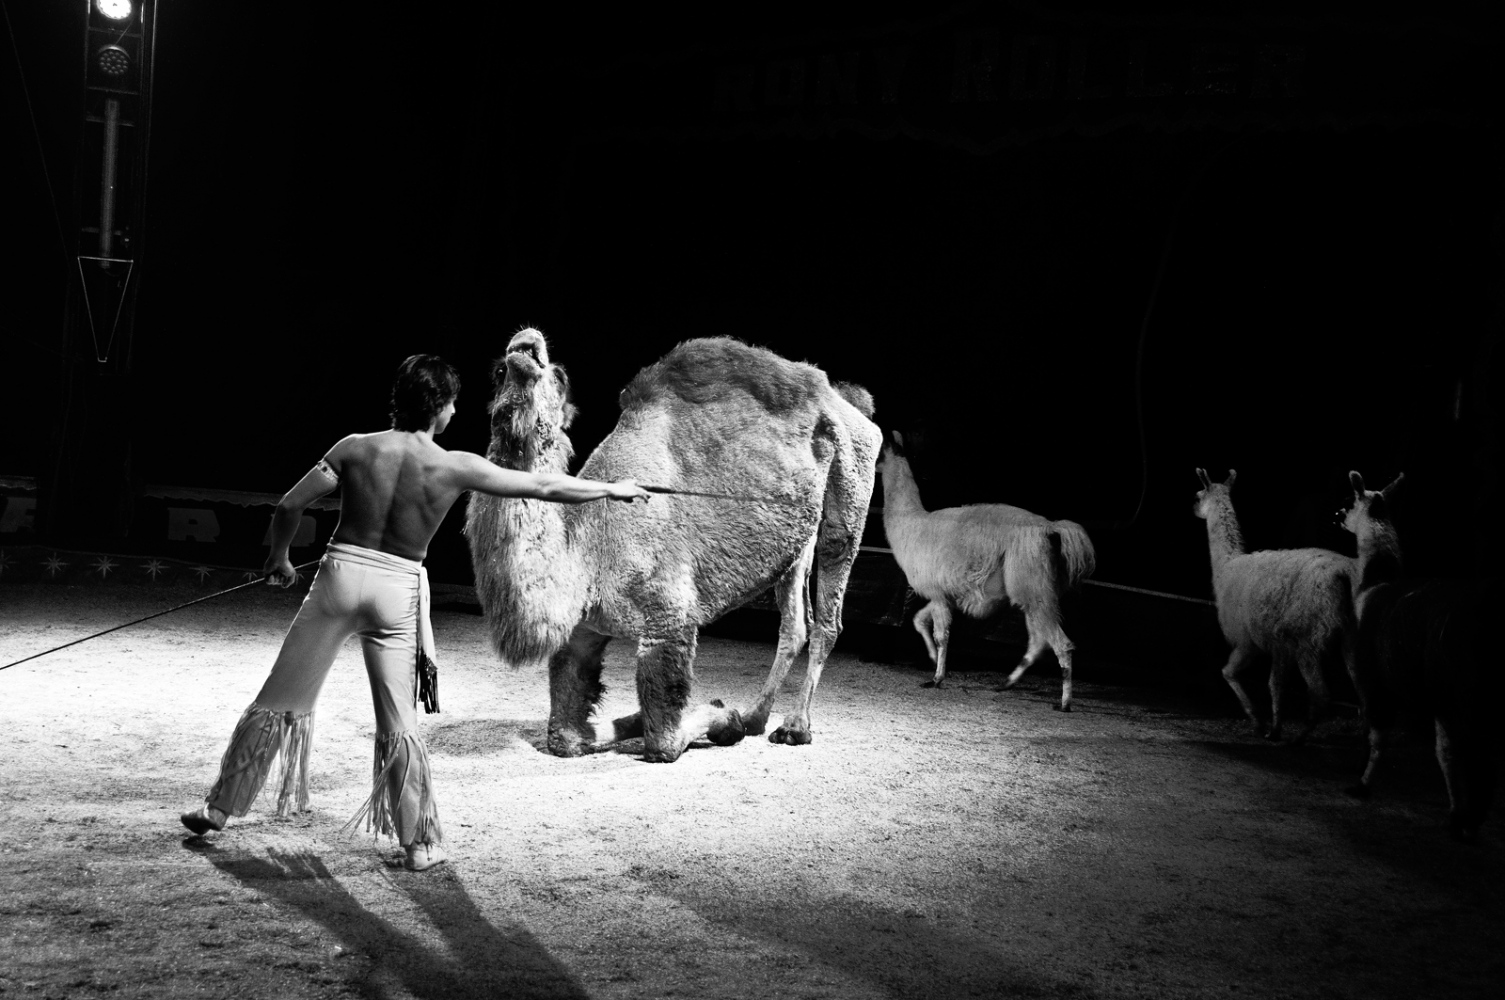 Art and Documentary Photography - Loading nuovoordine19.jpg